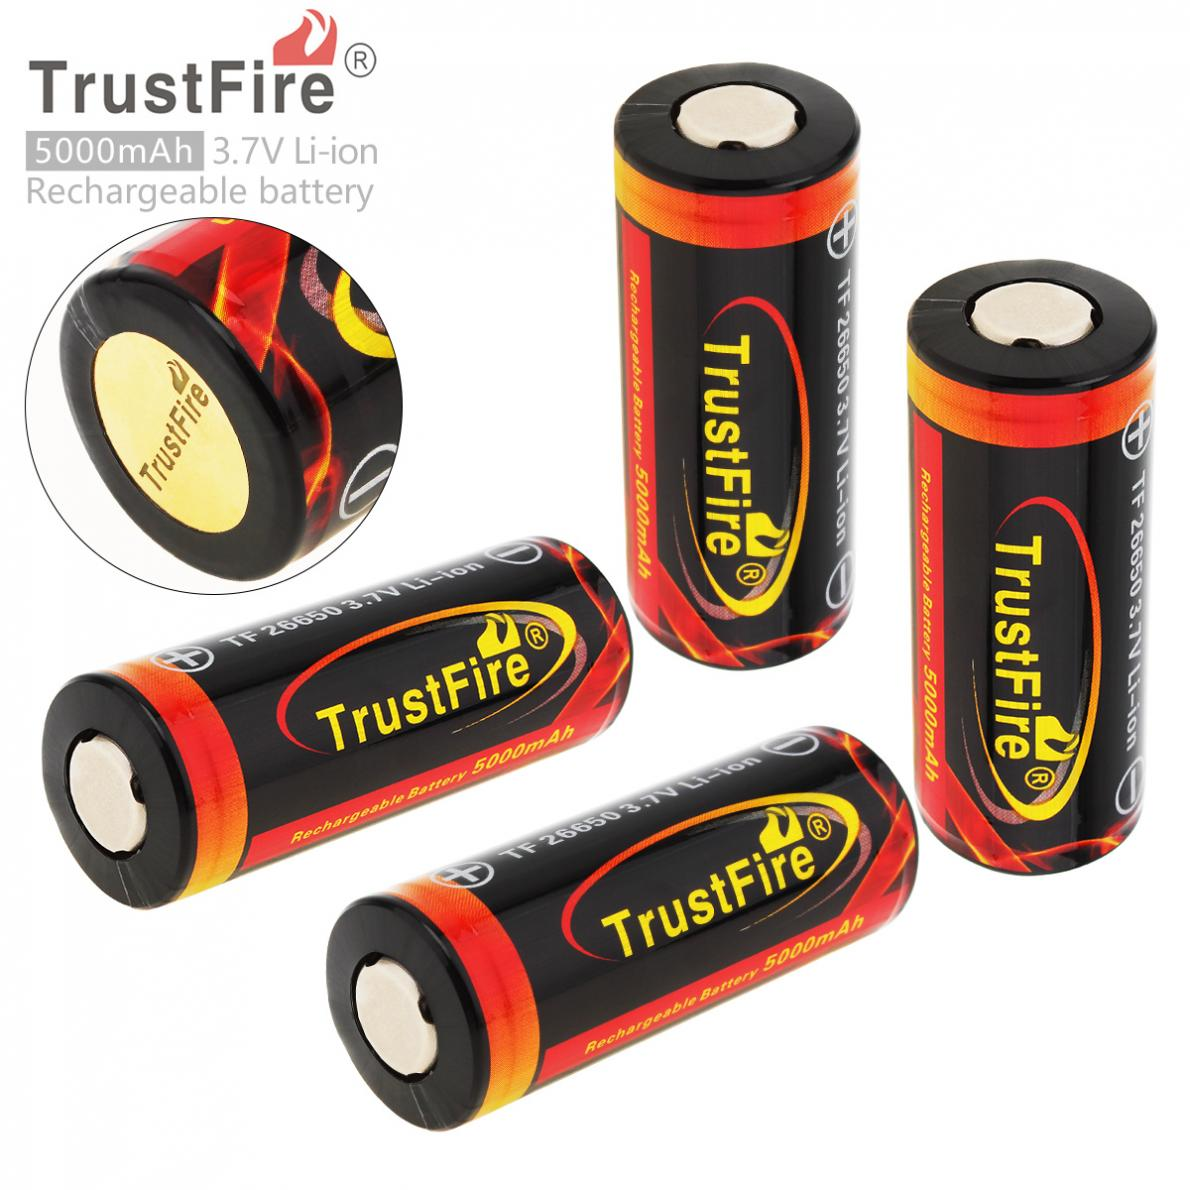 4Pieces TrustFire 3.7V 26650 Rechargeable Battery 5000mAh High Capacity Lithium Li-ion Battery with Protected PCB for Flashlight 2pcs trustfire 18650 rechargeable battery 3 7v 2400mah li ion lithium battery with protected pcb portable battery storage box